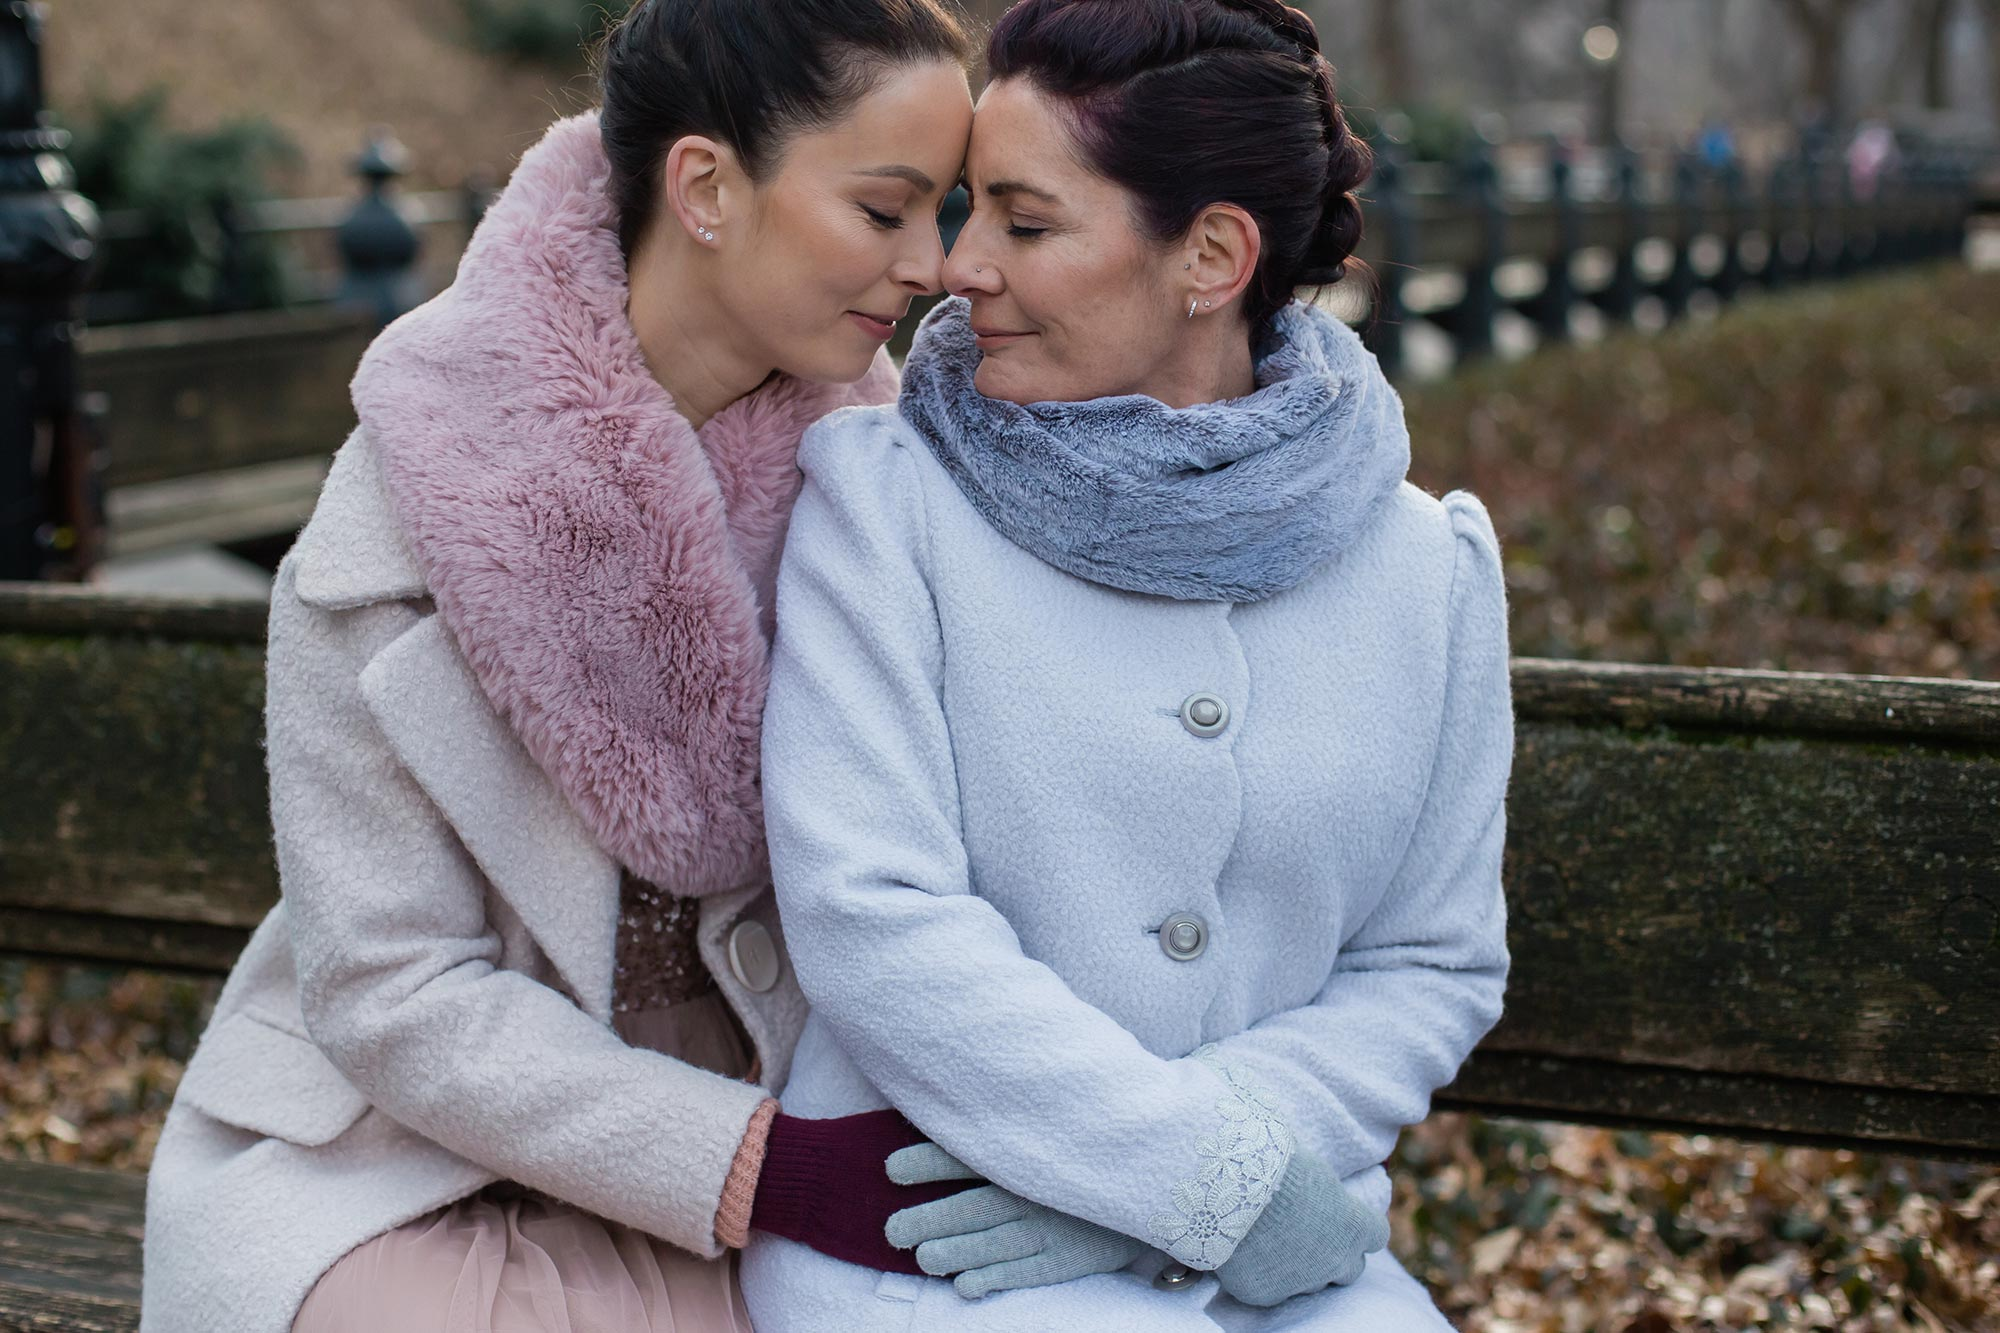 queer irish central park winter elopement kate alison photography embrace on bench